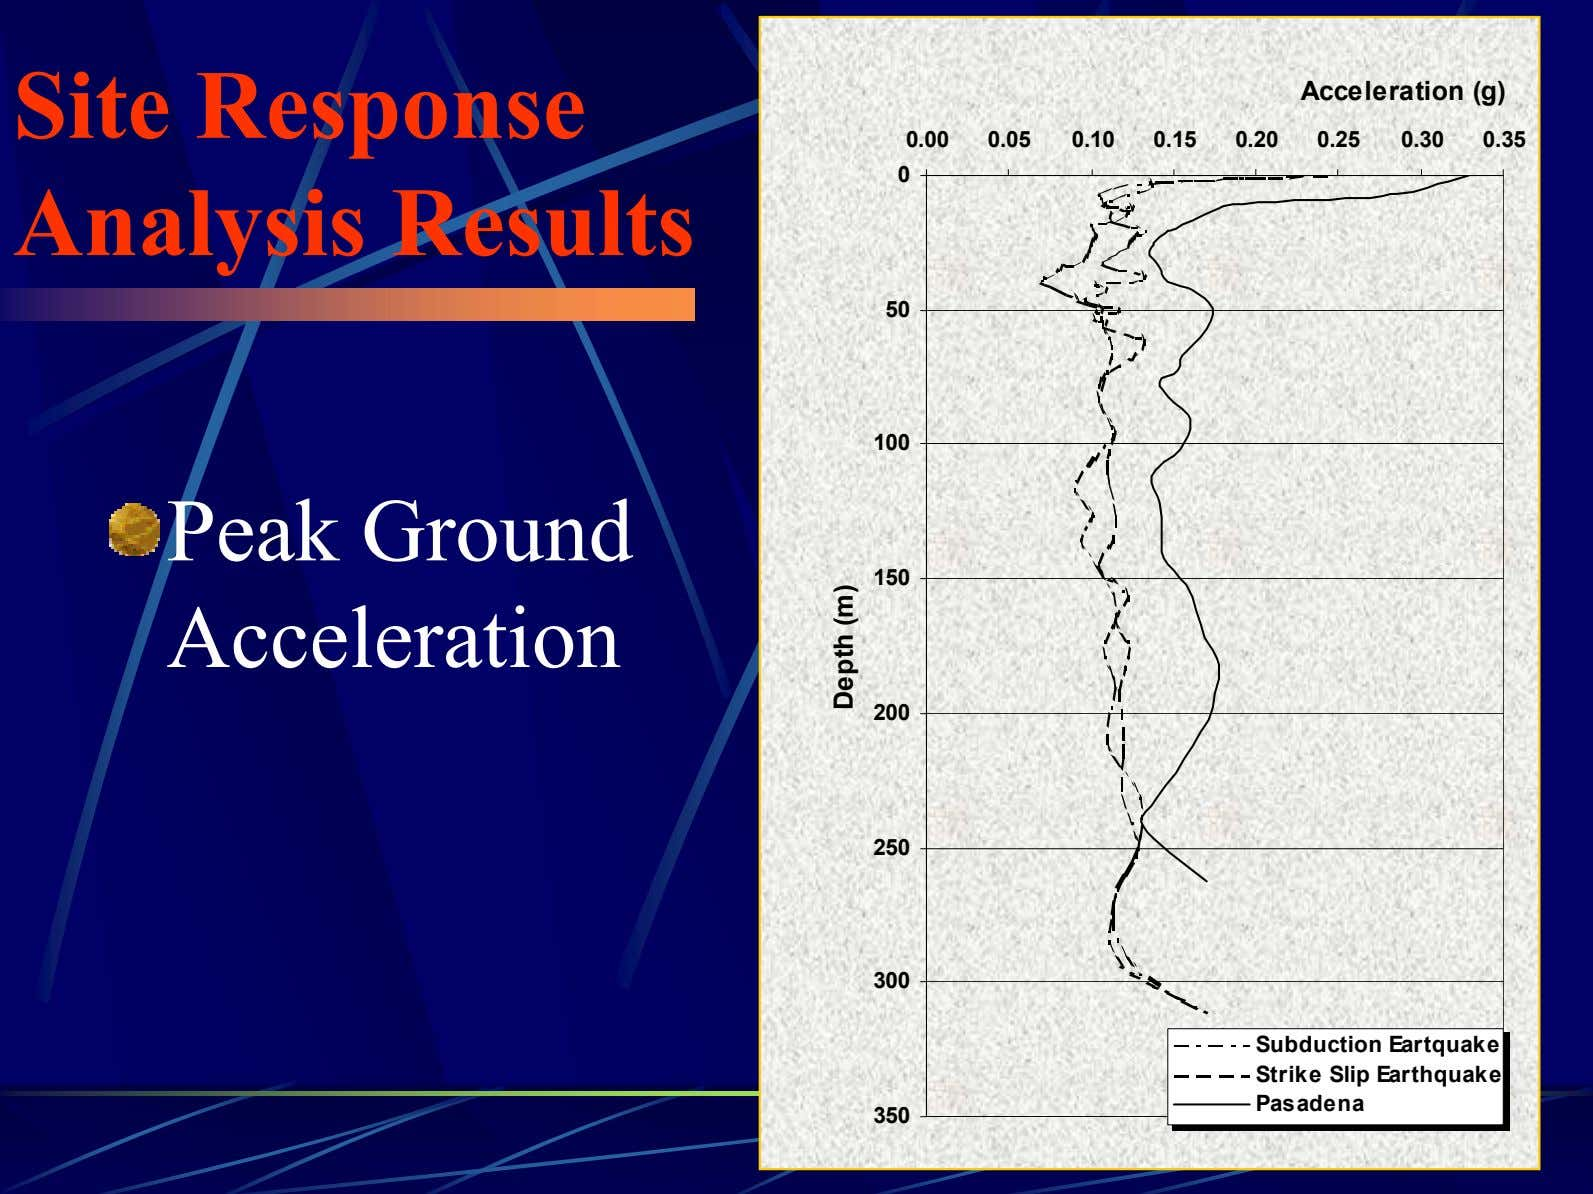 Site Response Analysis Results Acceleration (g) 0.00 0.05 0.10 0.15 0.20 0.25 0.30 0.35 0